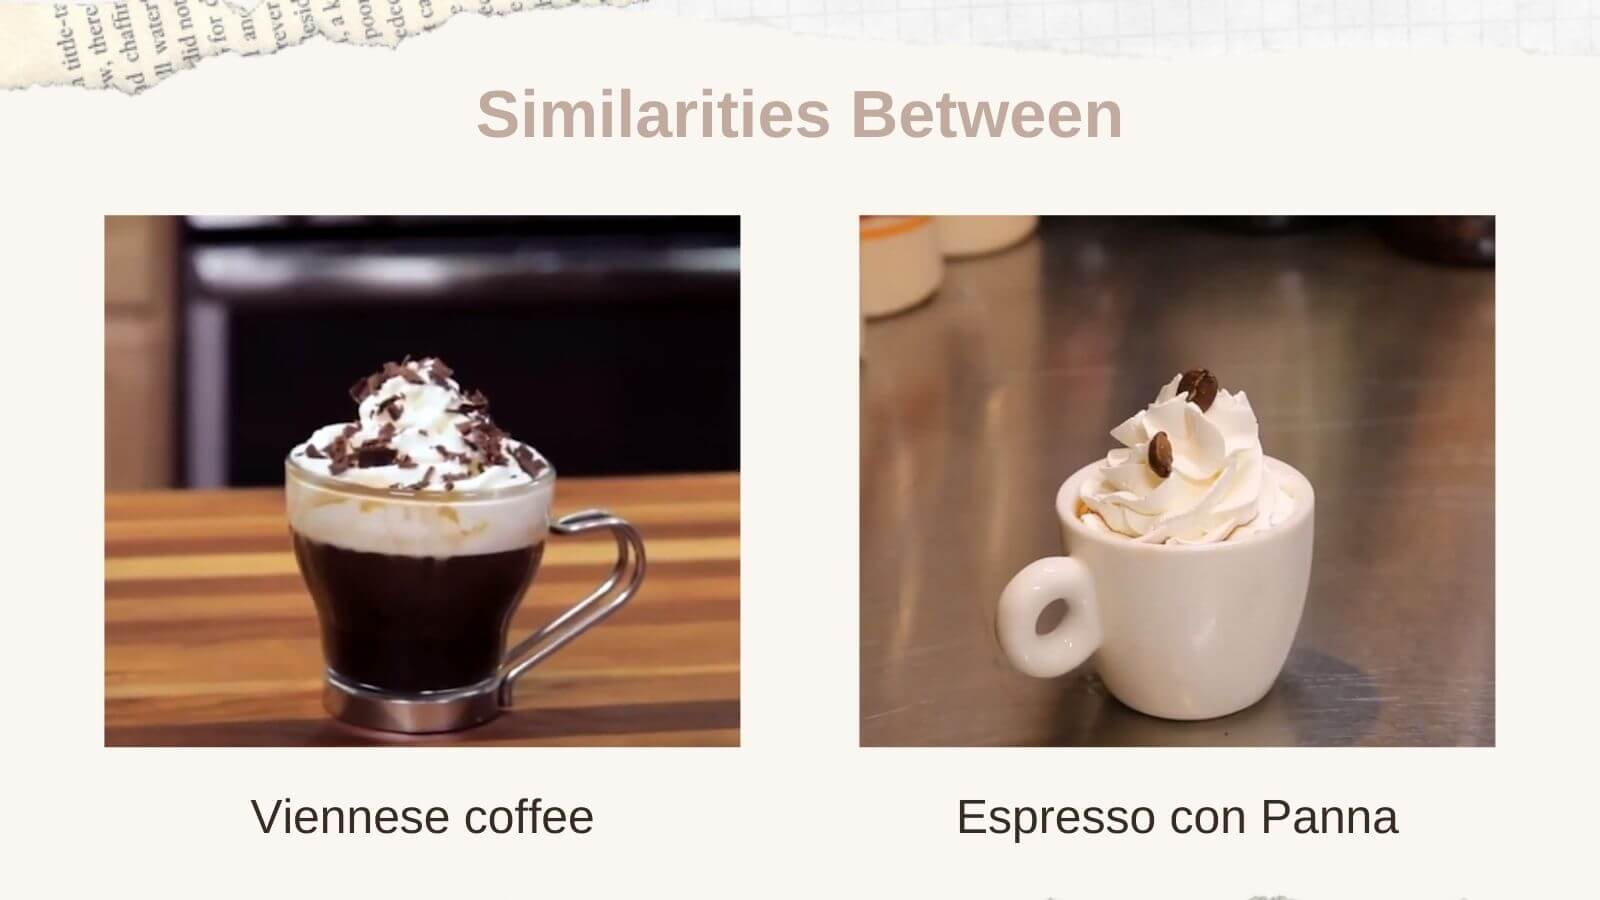 Viennese coffee and Espresso con Panna in different shapes